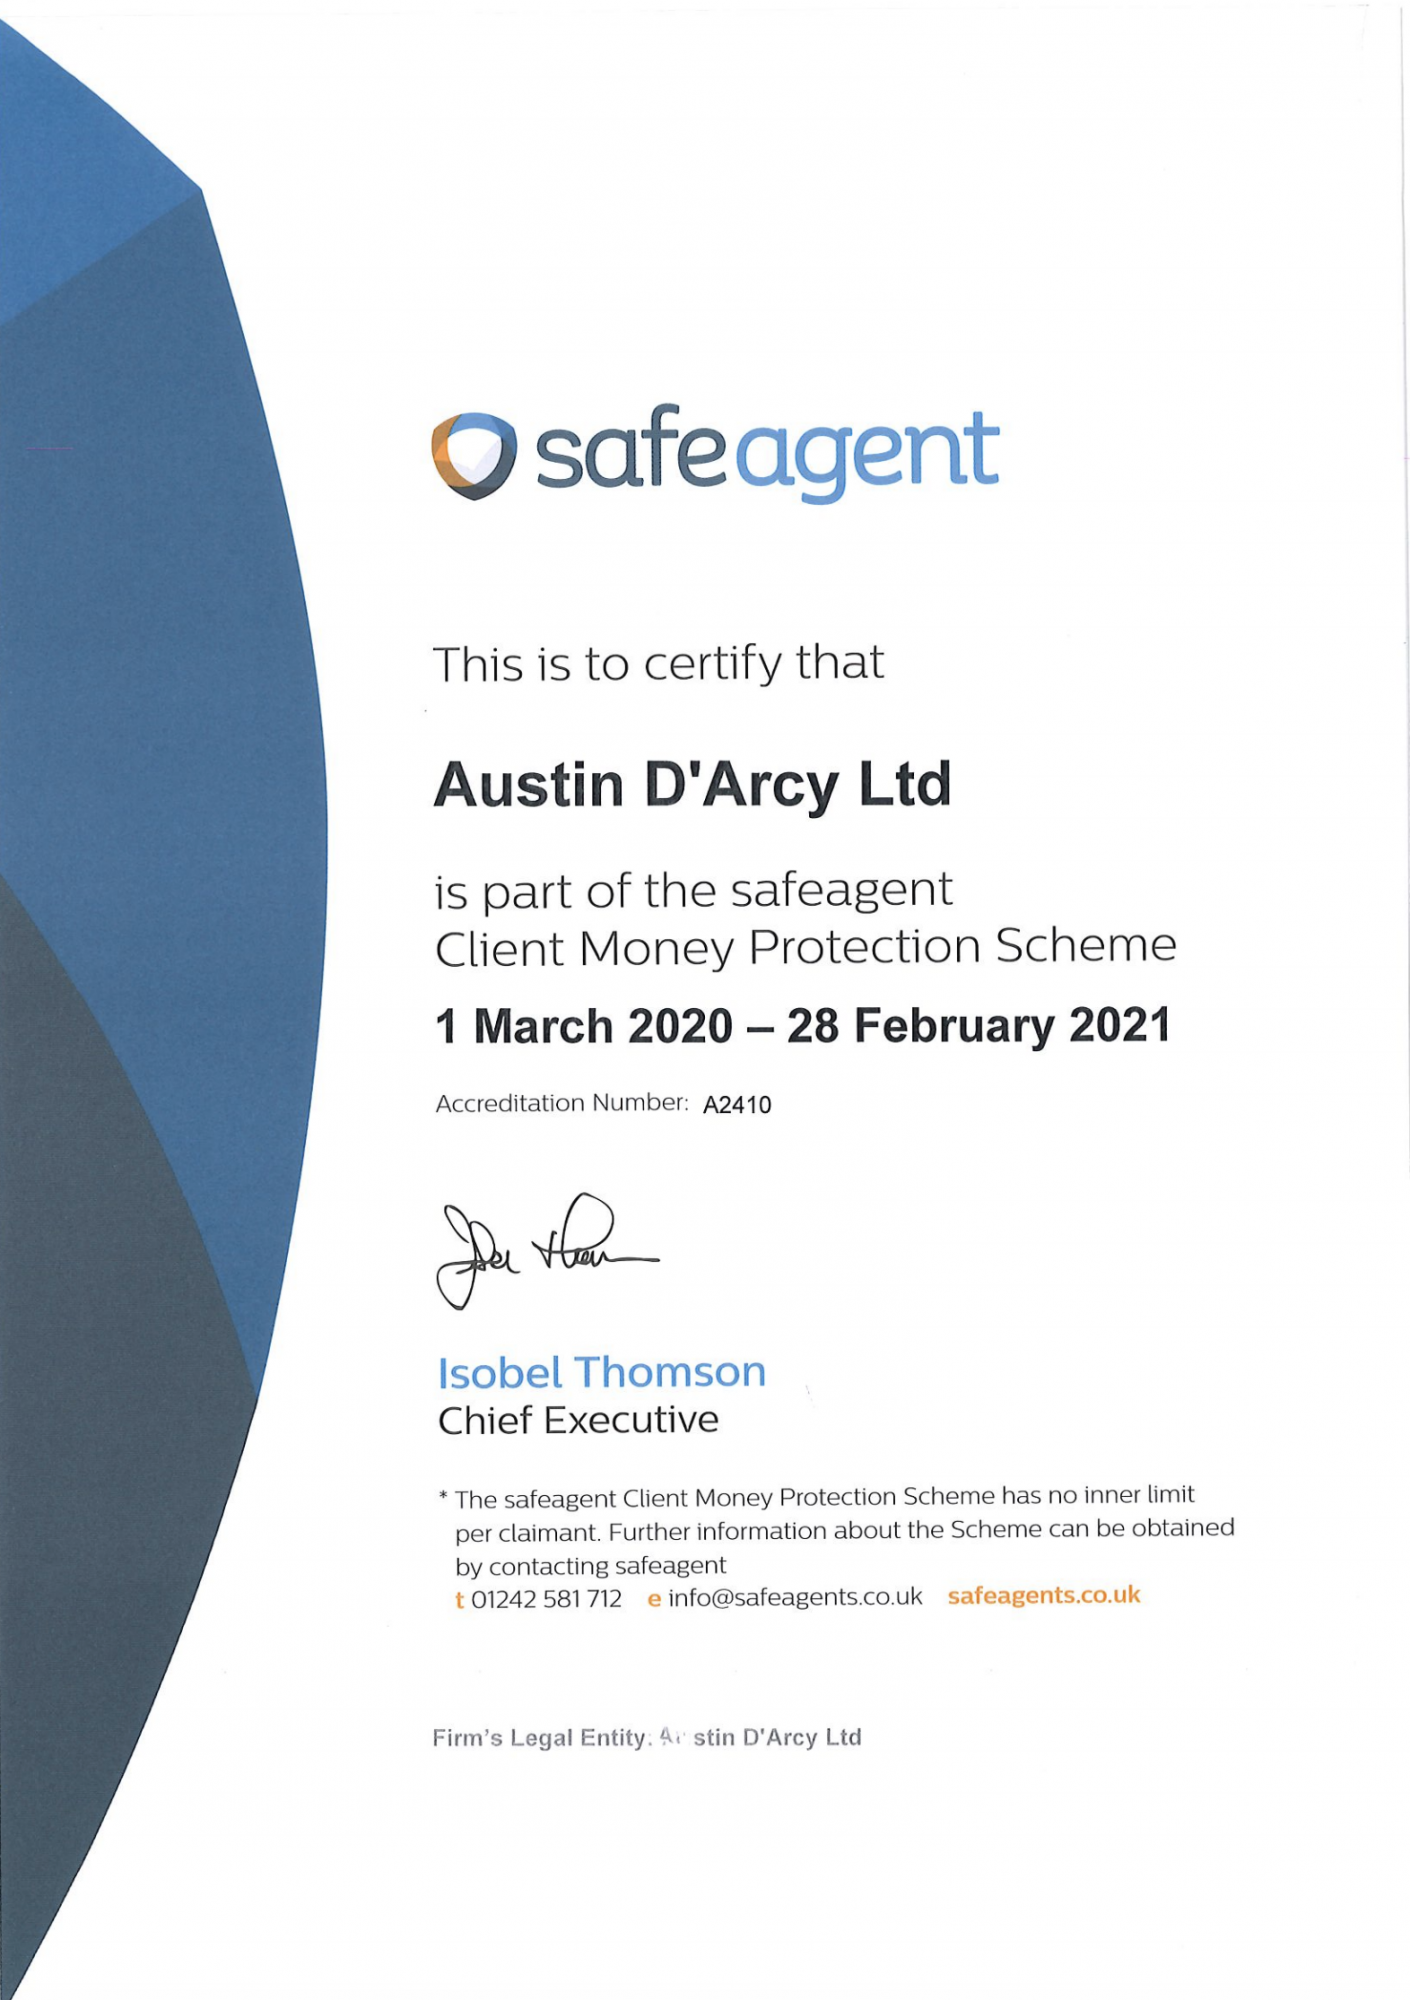 Austin Darcy are SafeAgents